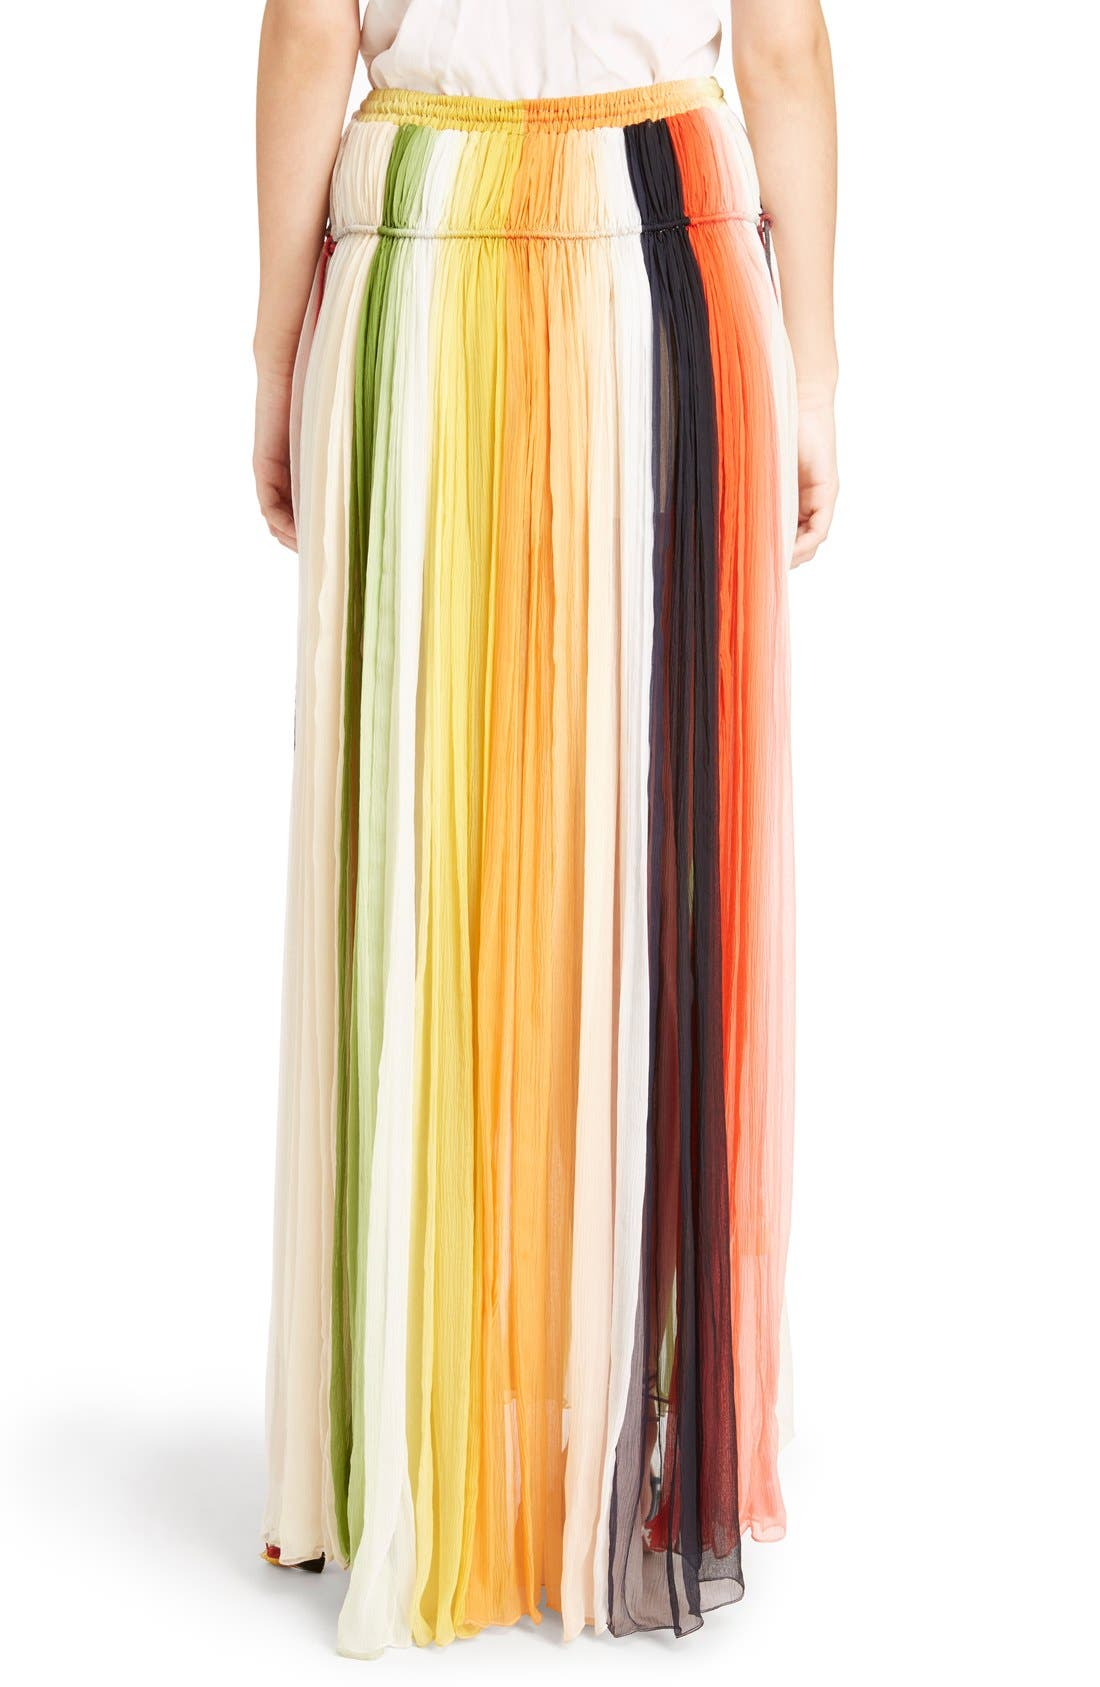 CHLOÉ,                             Stripe Pleated Silk Skirt with Tassels,                             Alternate thumbnail 5, color,                             800